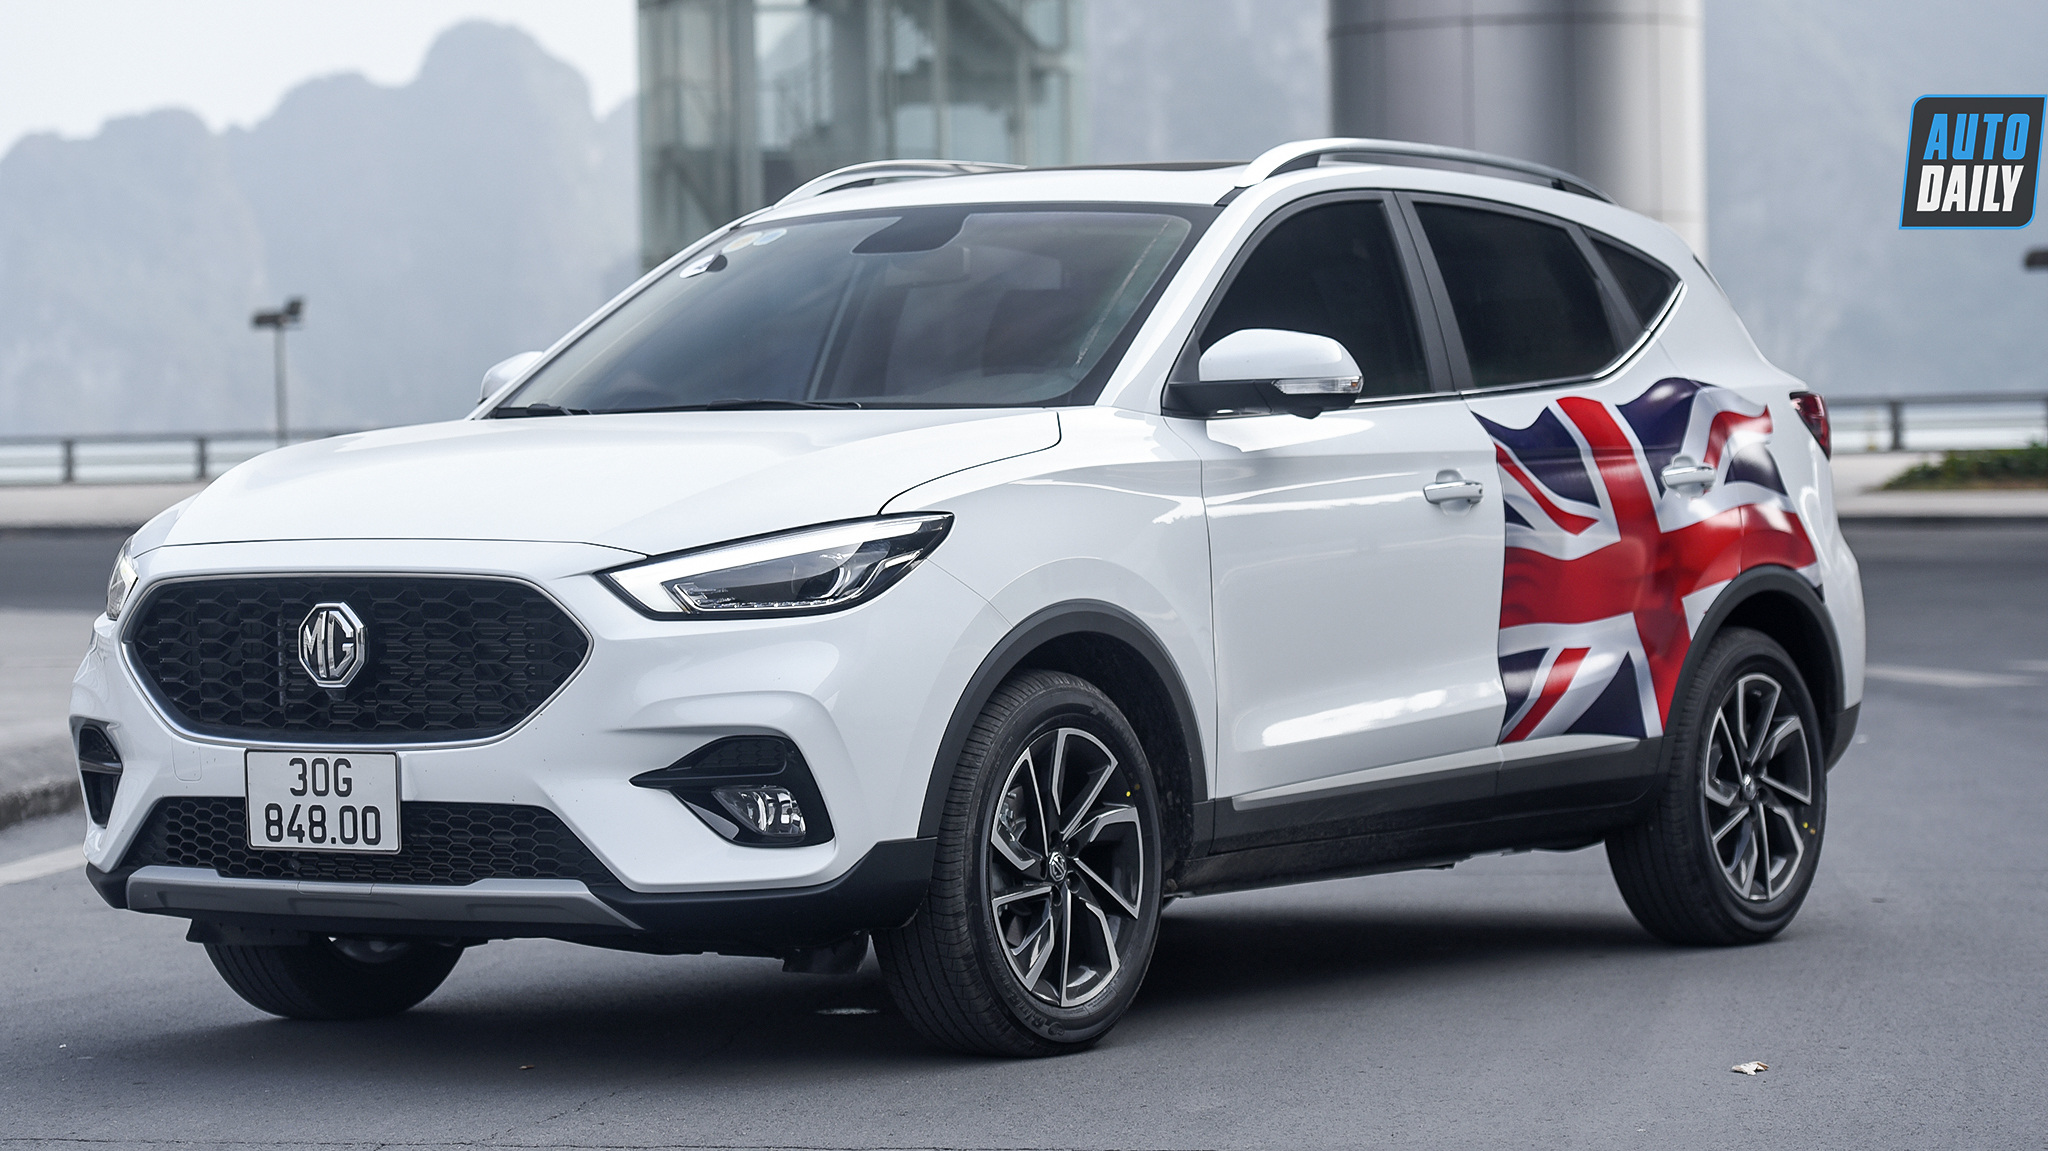 MG ZS 2021 evaluation: A reasonable choice of VND 600 million 3.jpg price range